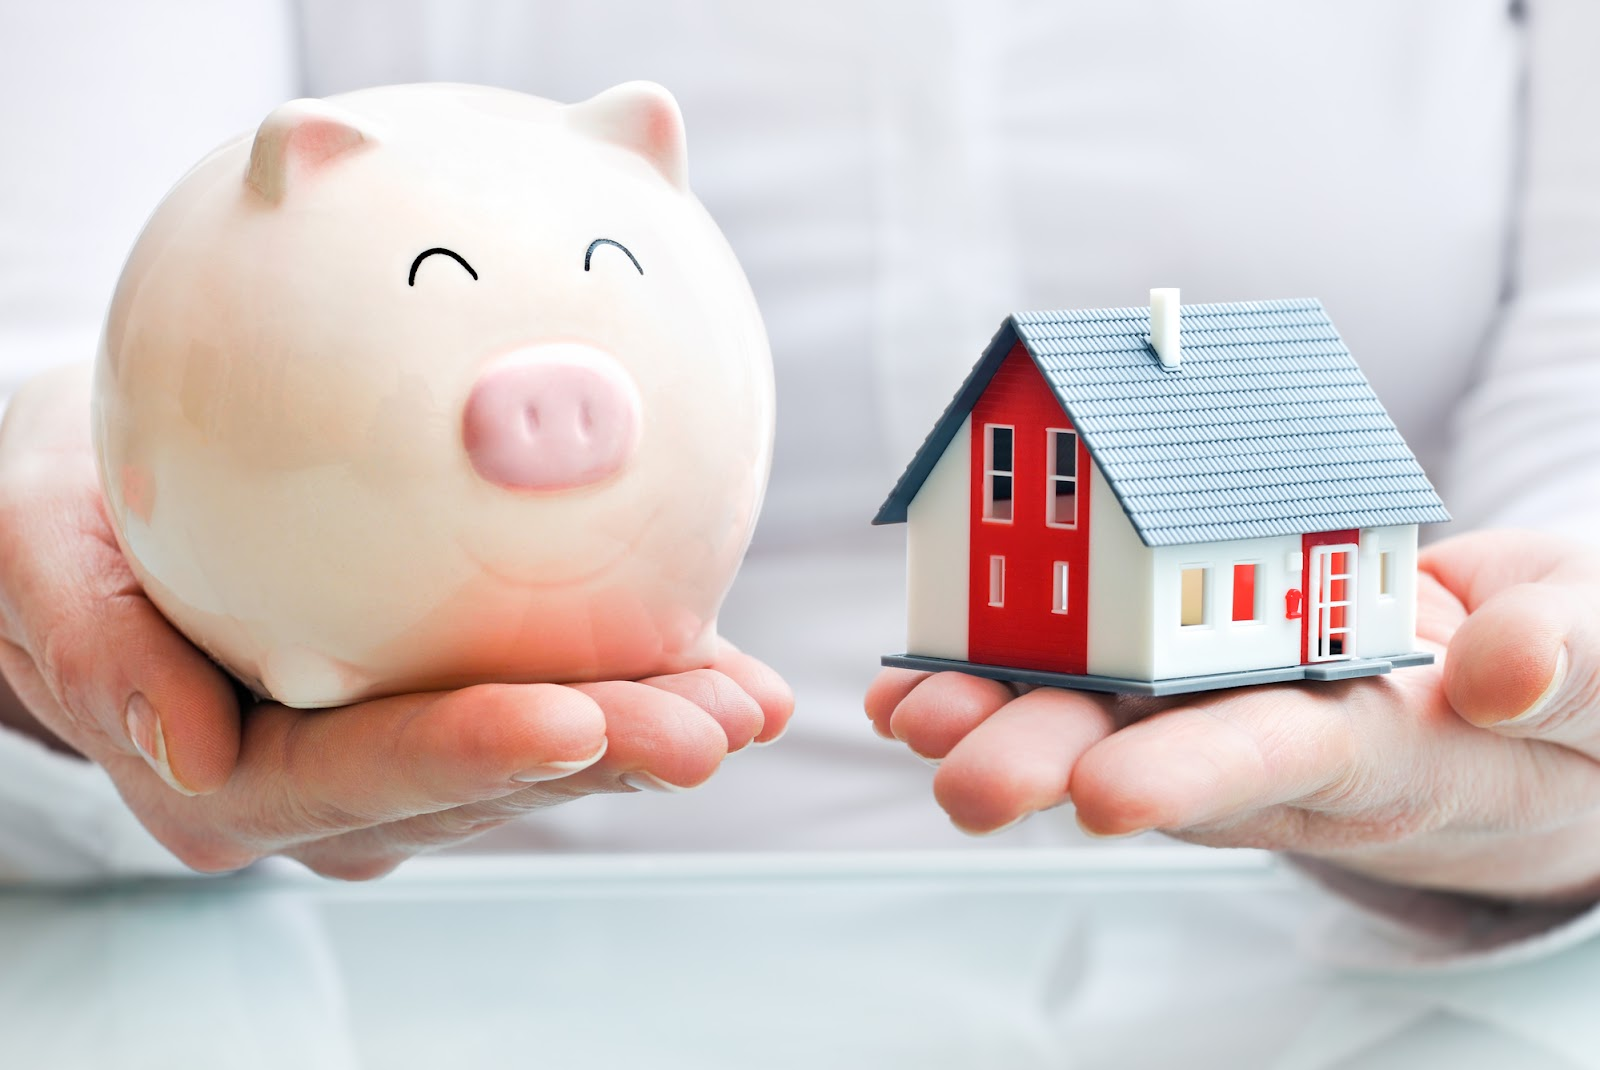 a toy home and a piggy bank for alternative mortgage financing options